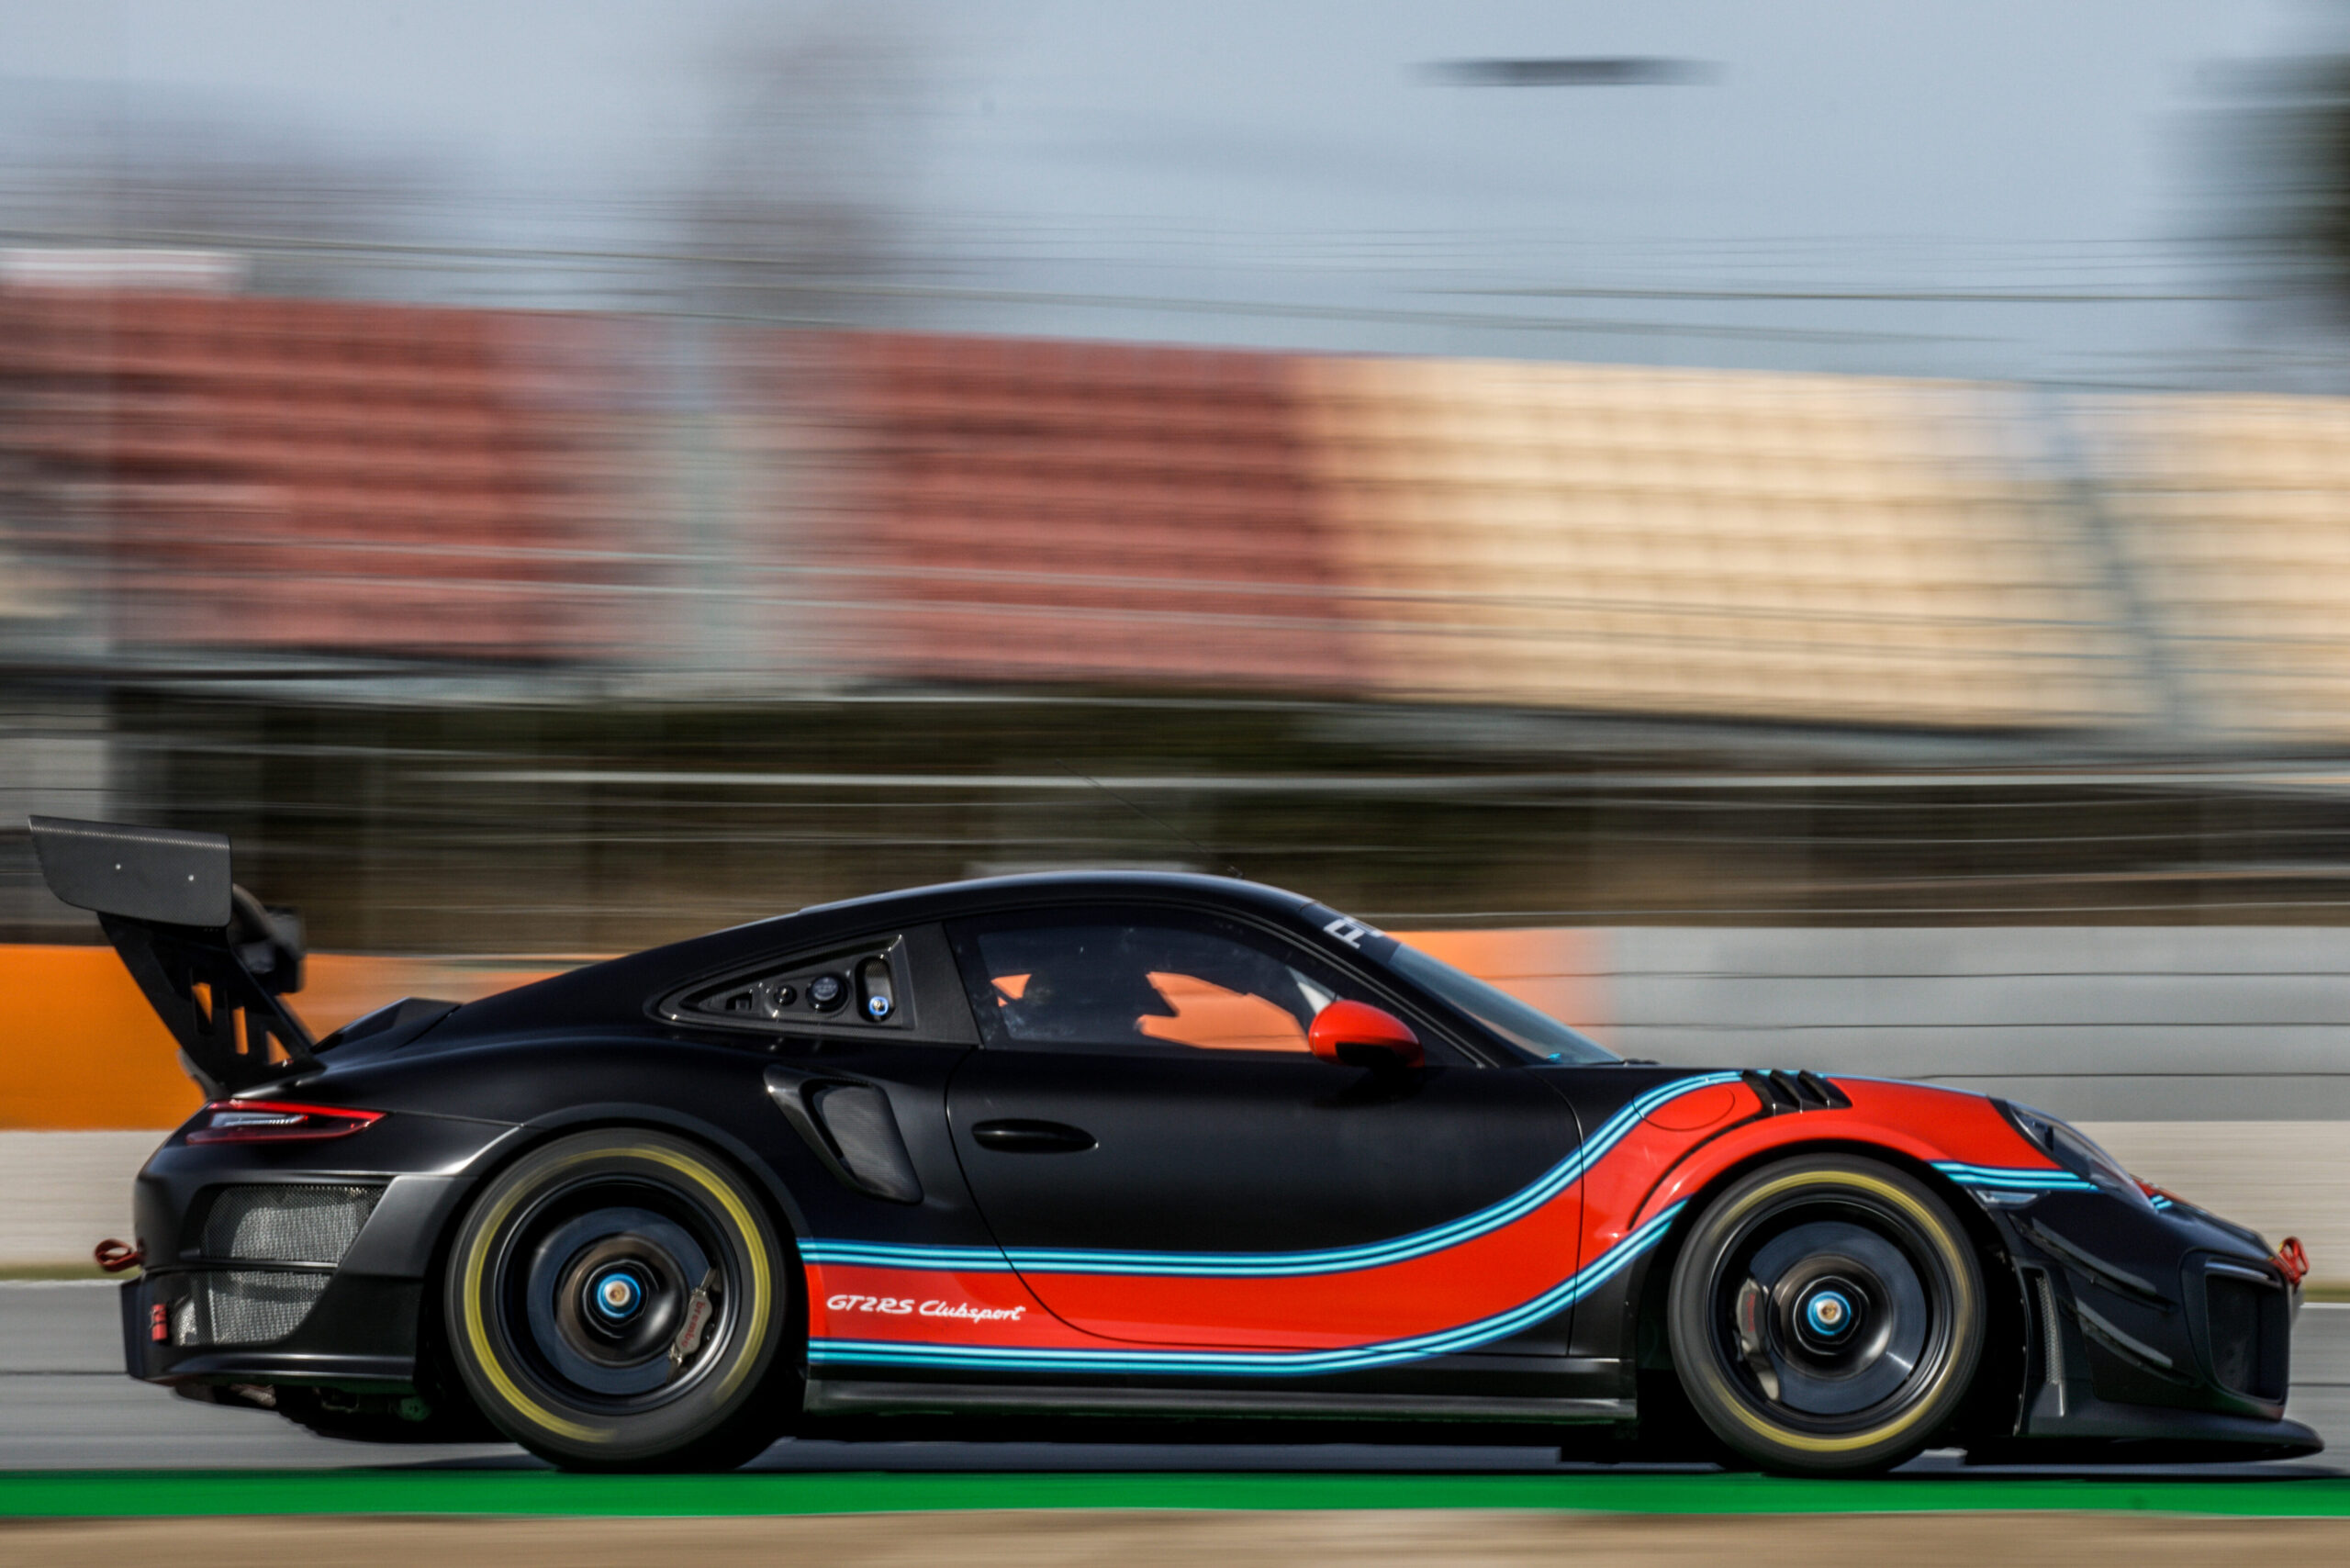 45 days left until the first GT2 European race in Monza.